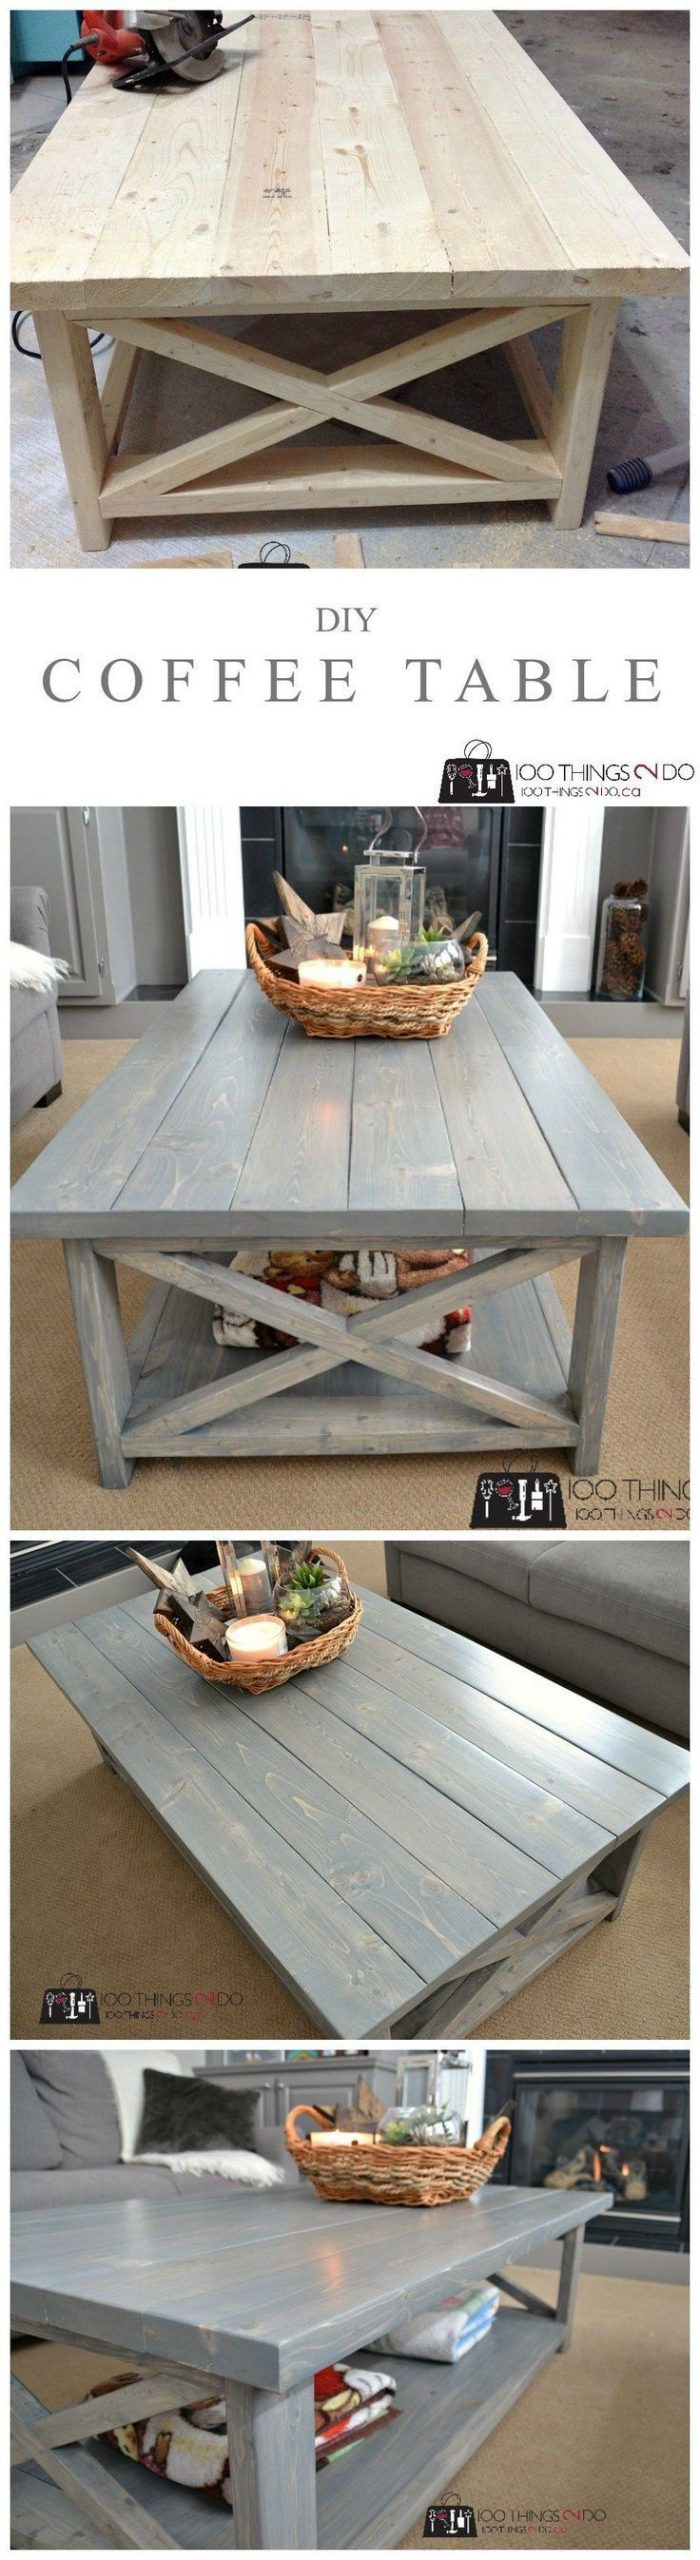 31 Indoor Woodworking Projects to Do This Winter #diytattooimages – wood projects